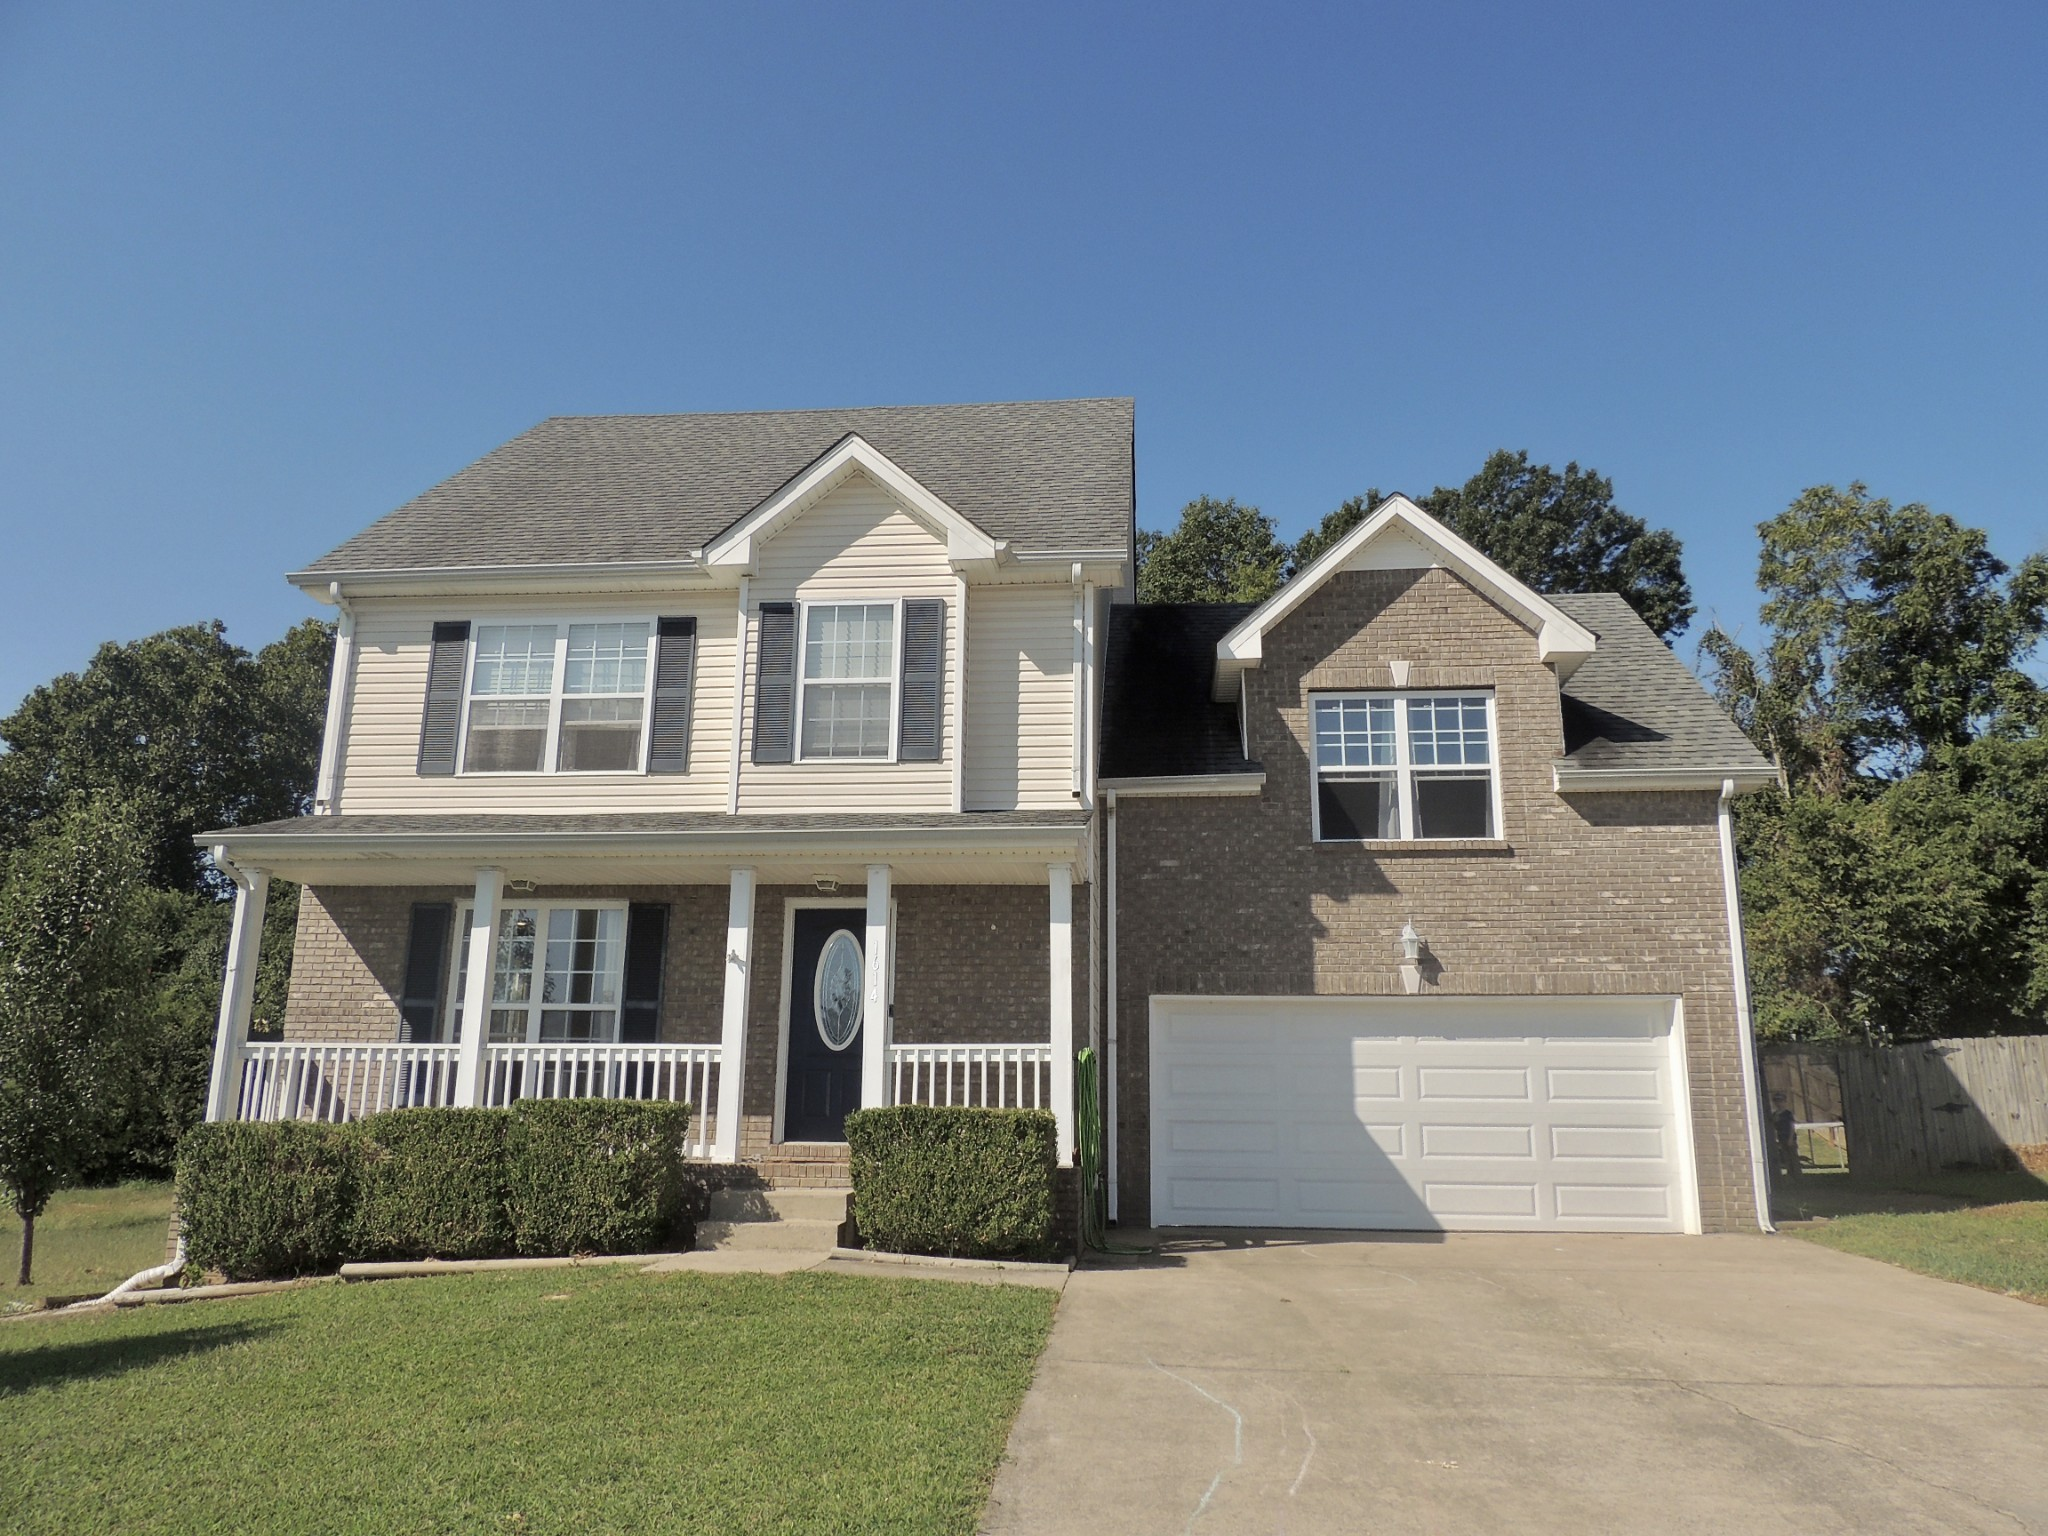 1614 Autumn Dr Property Photo - Clarksville, TN real estate listing